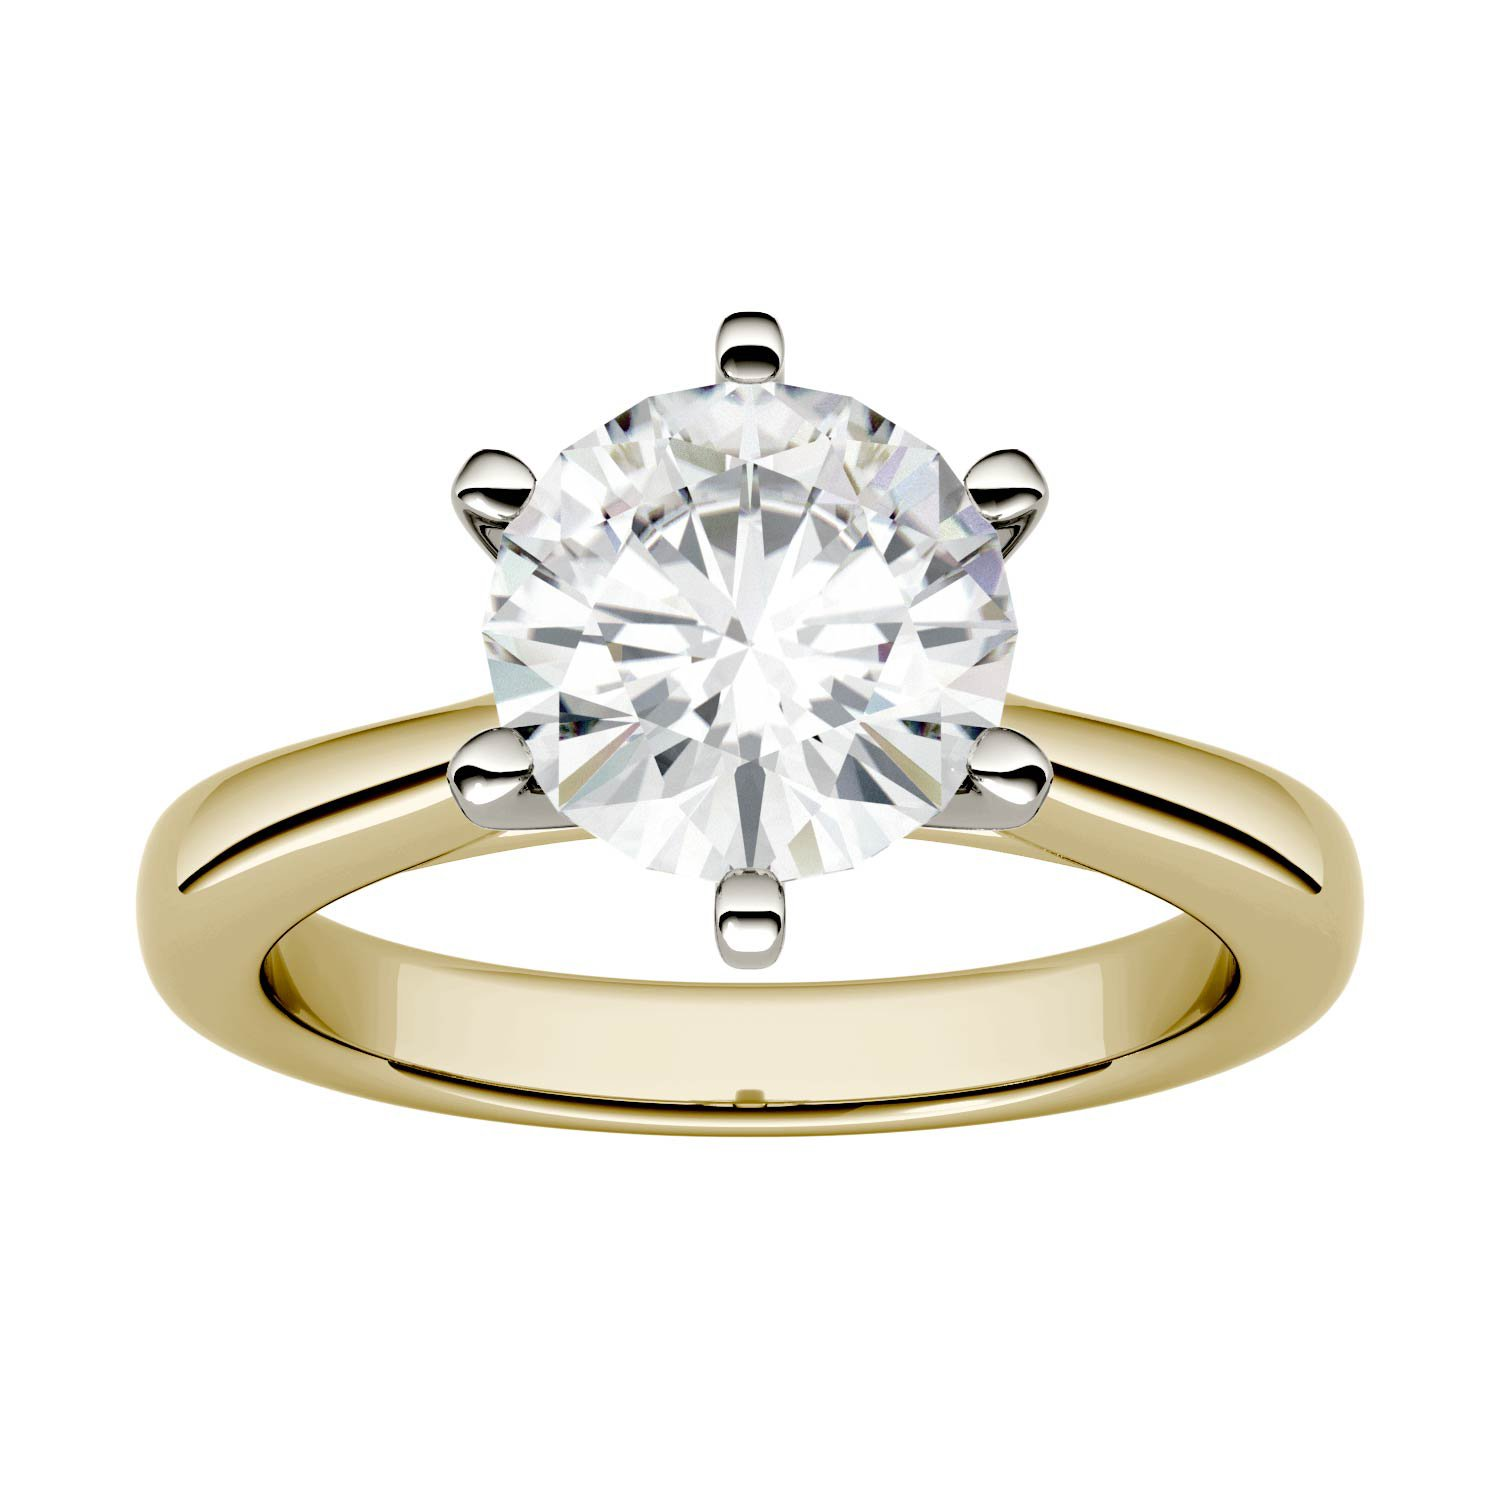 Forever One Round 8.0mm Moissanite Engagement Ring-size 6, 1.90ct DEW (D-E-F) By Charles & Colvard